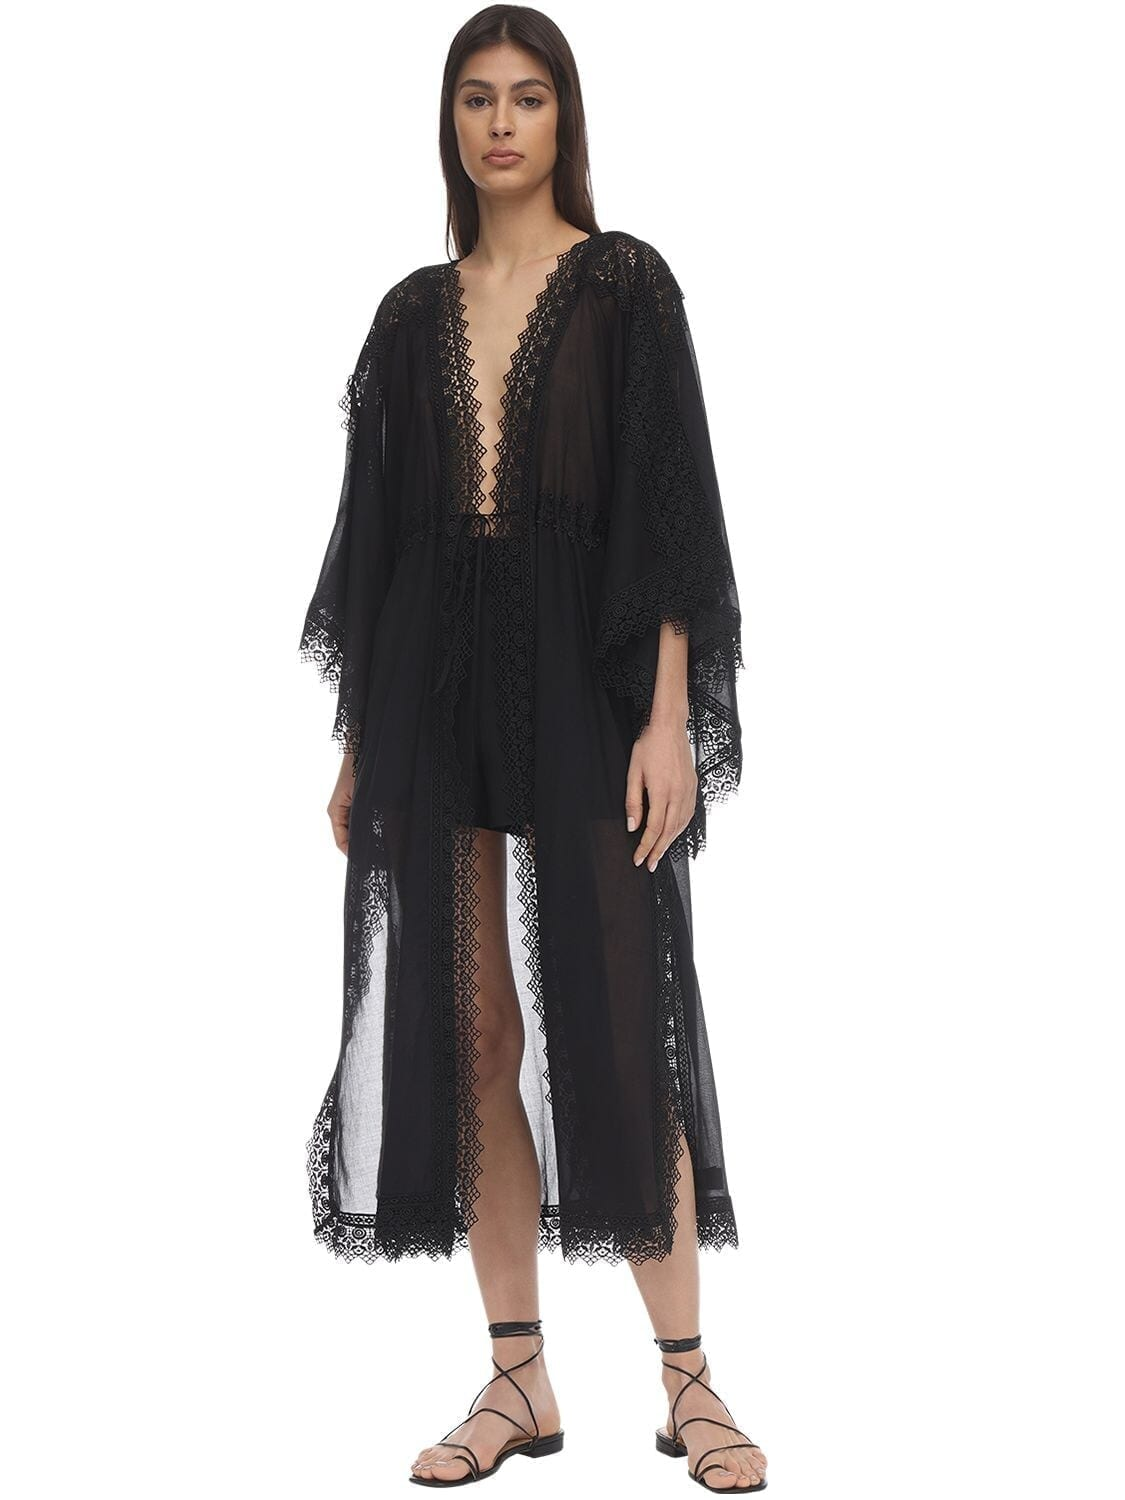 CHARO RUIZ Angela Cotton Maxi Caftan Dress